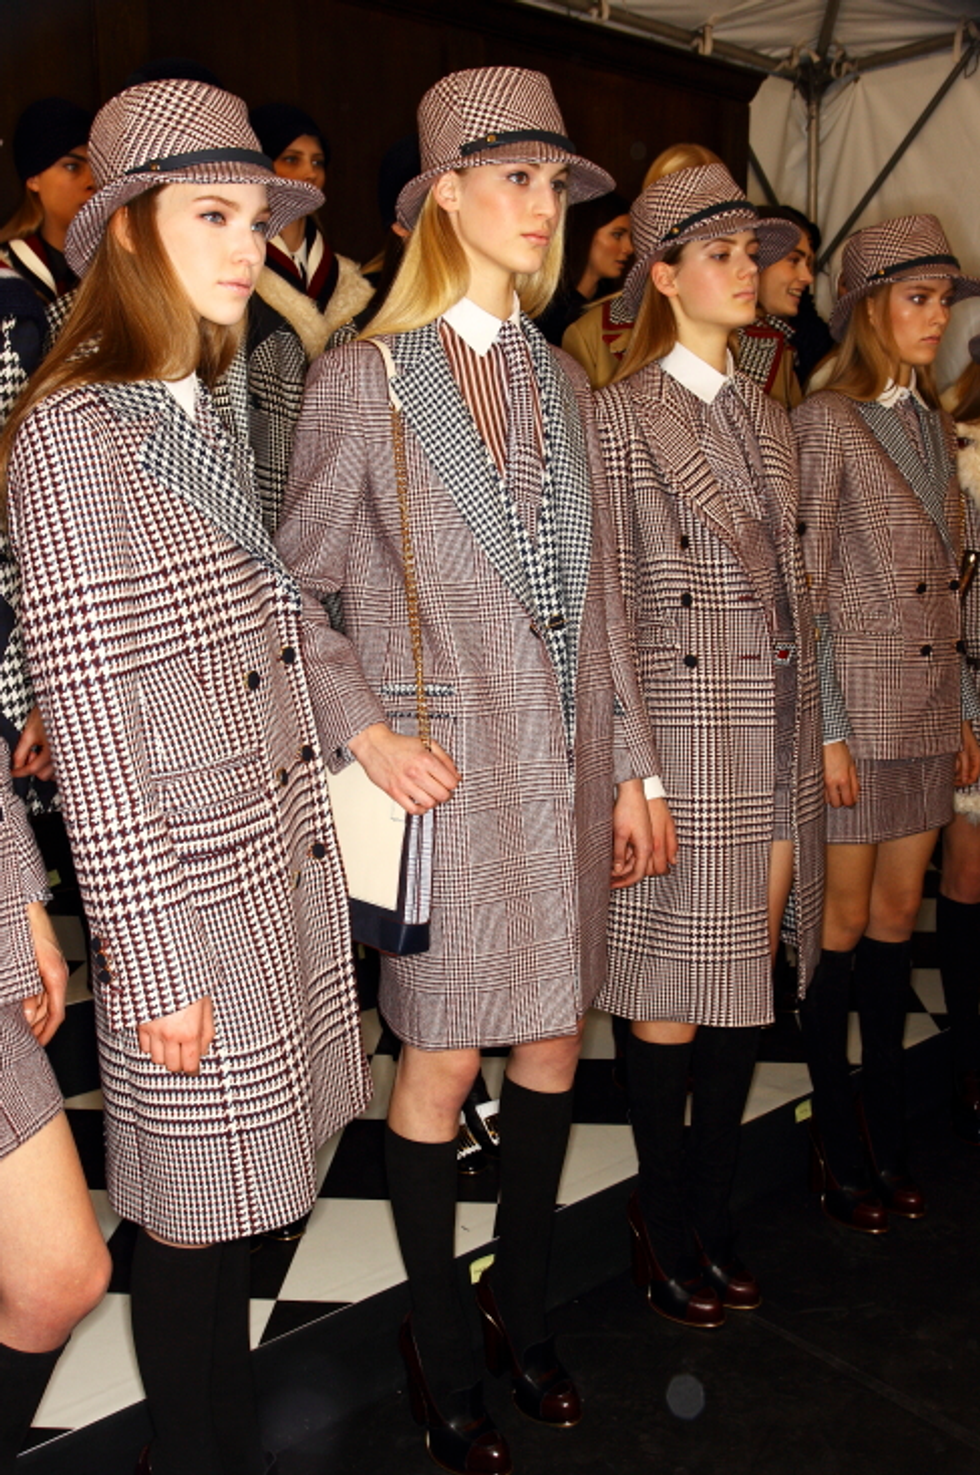 Take Ivy: Backstage Photos from Tommy Hilfiger's Ivy League-Meets-Savile Row Show